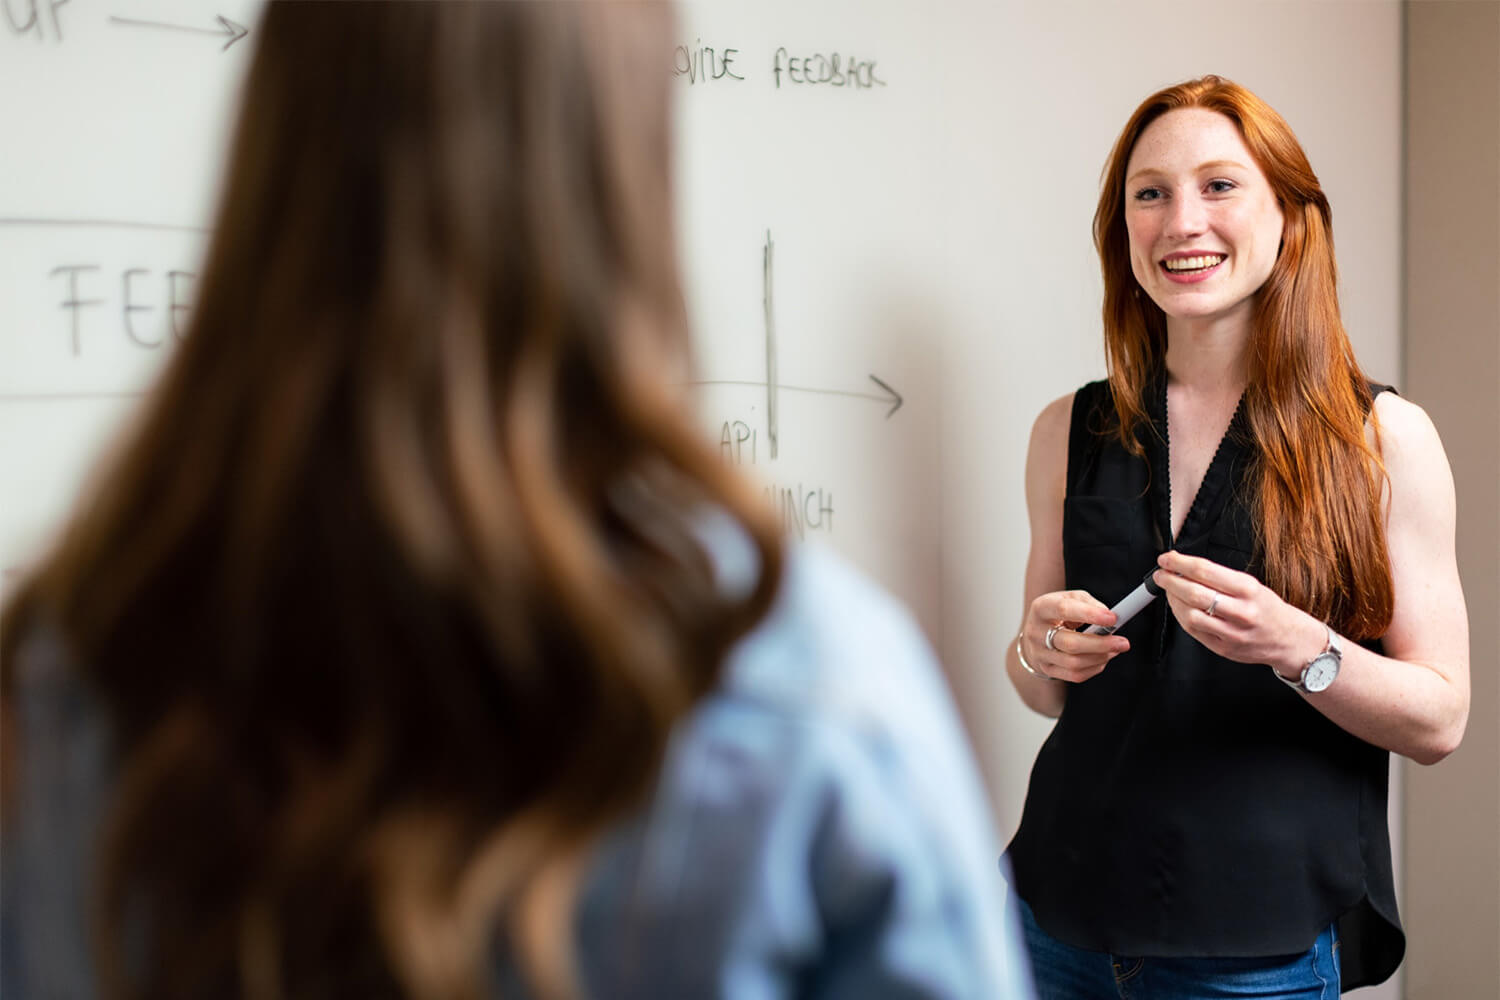 Teacher in front of a whiteboard talking to a student